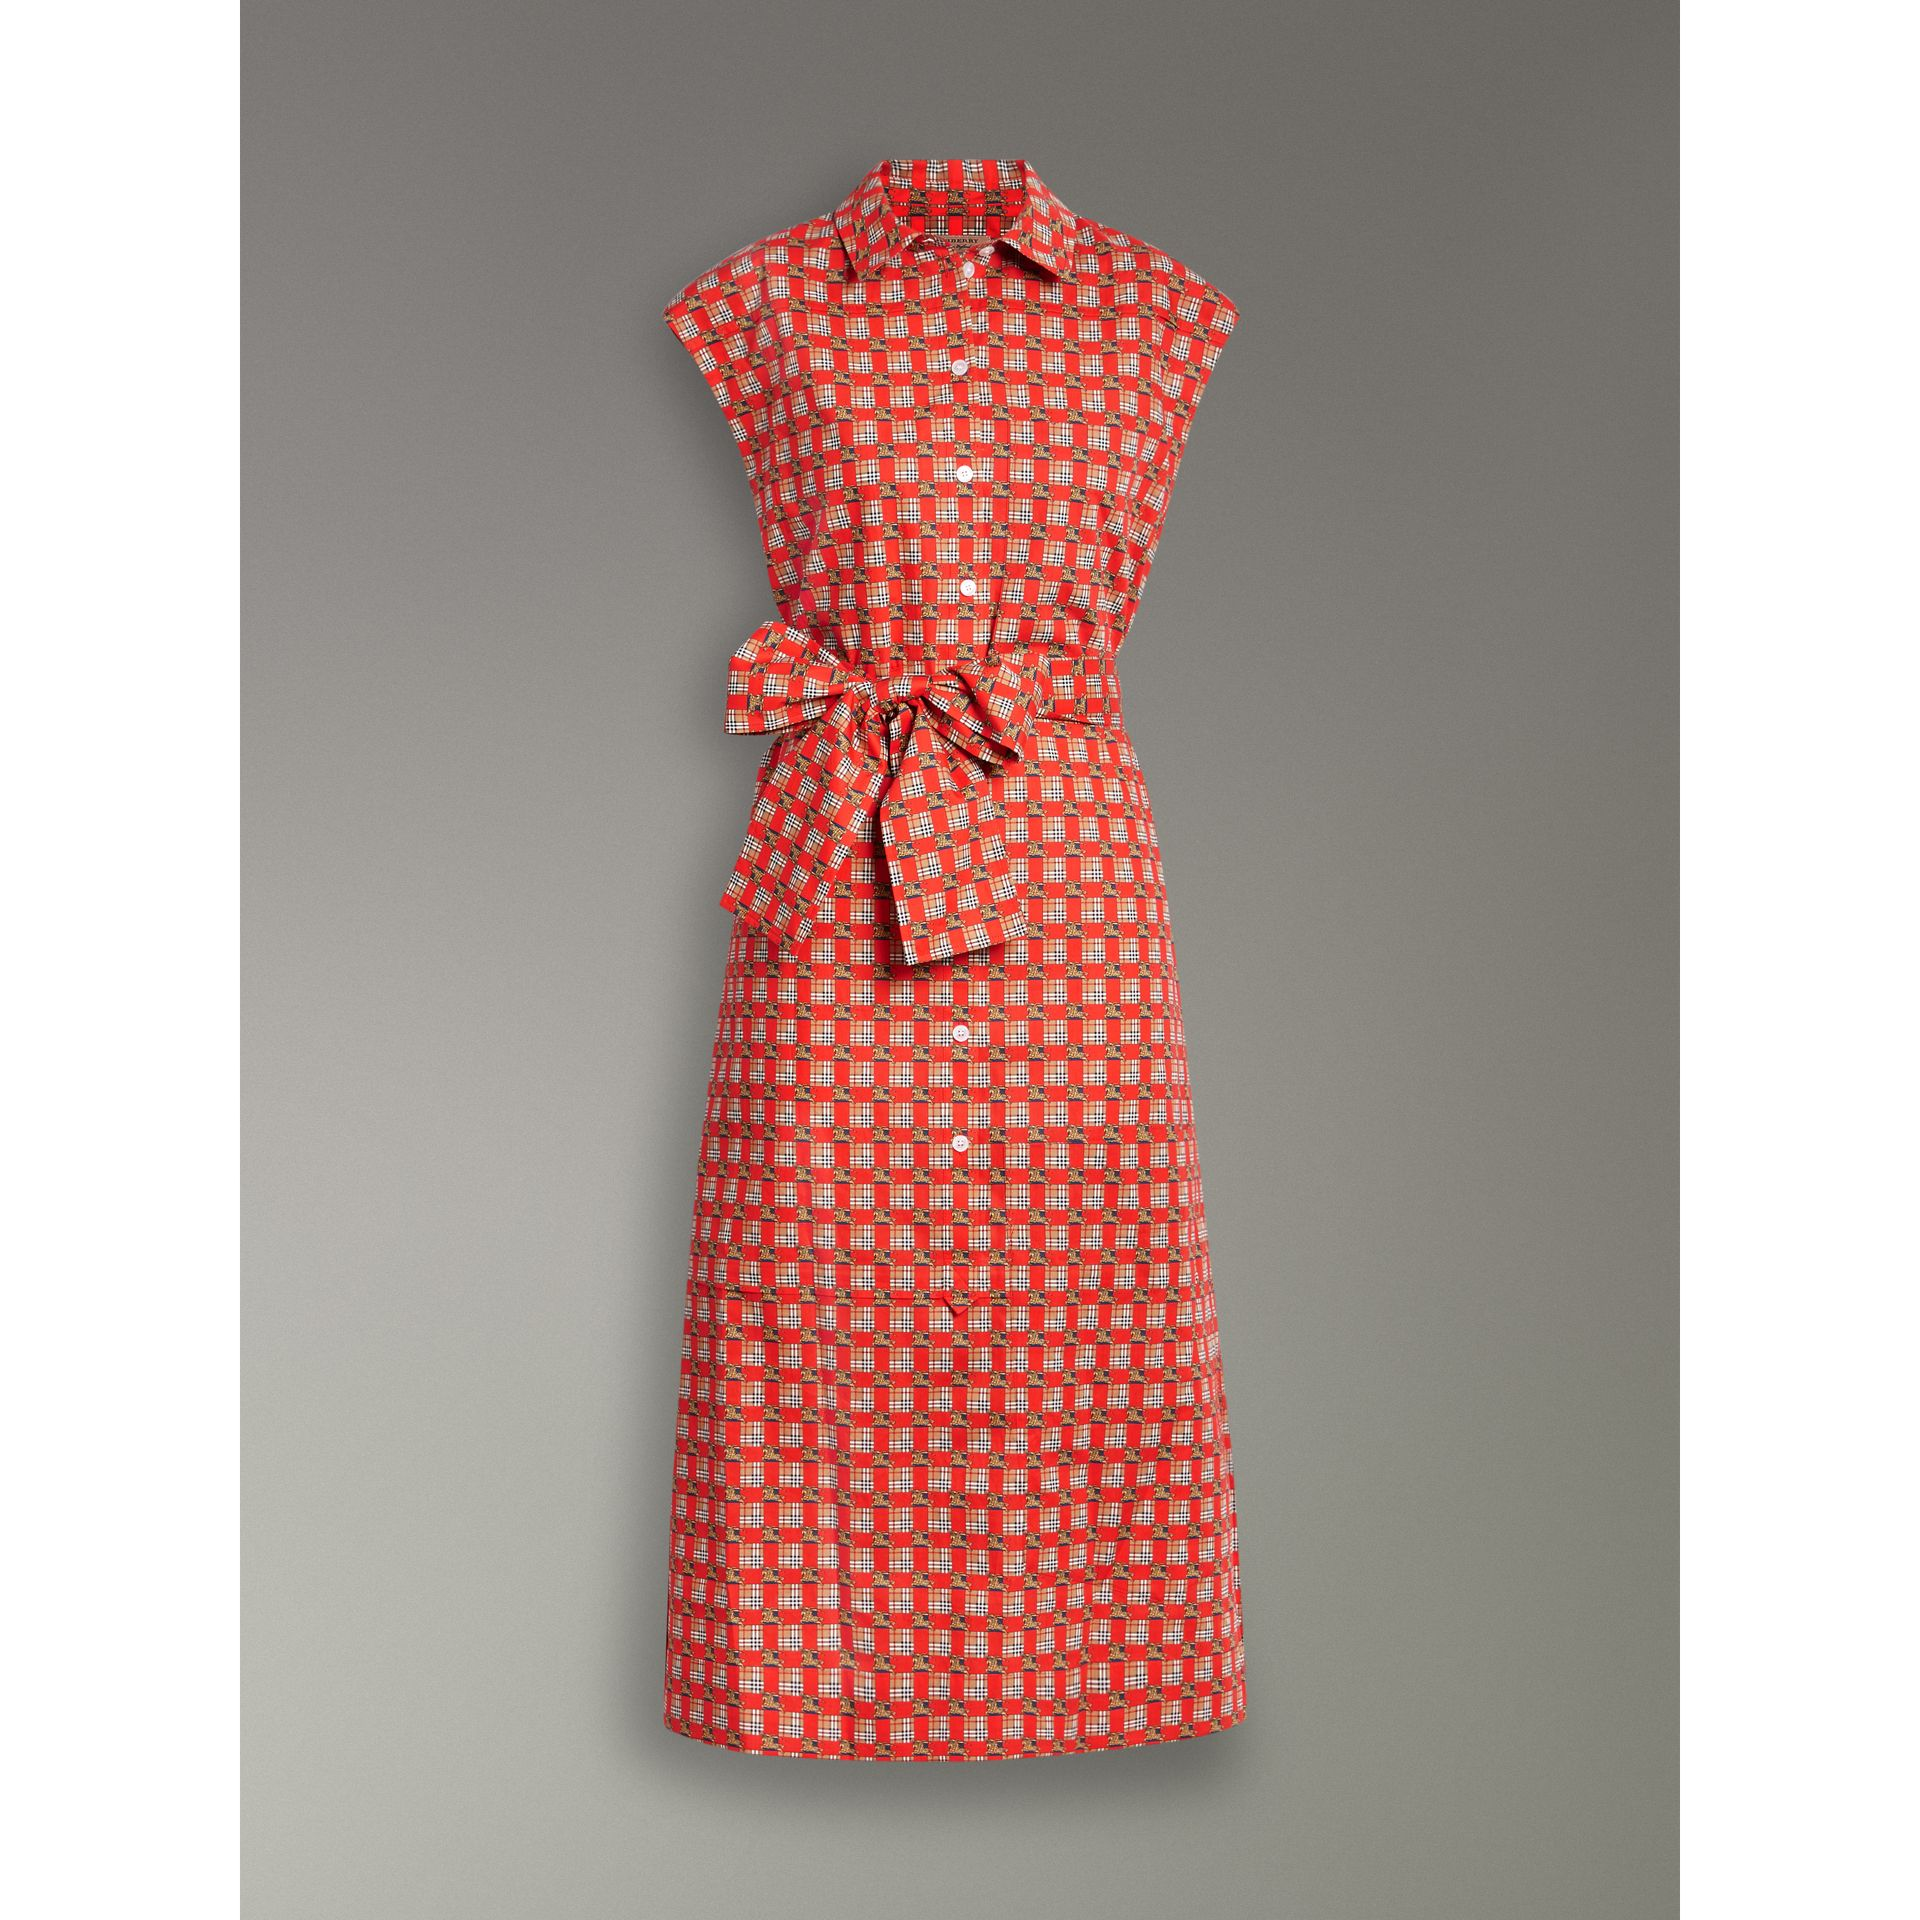 Tiled Archive Print Cotton Shirt Dress in Bright Red - Women | Burberry Canada - gallery image 3